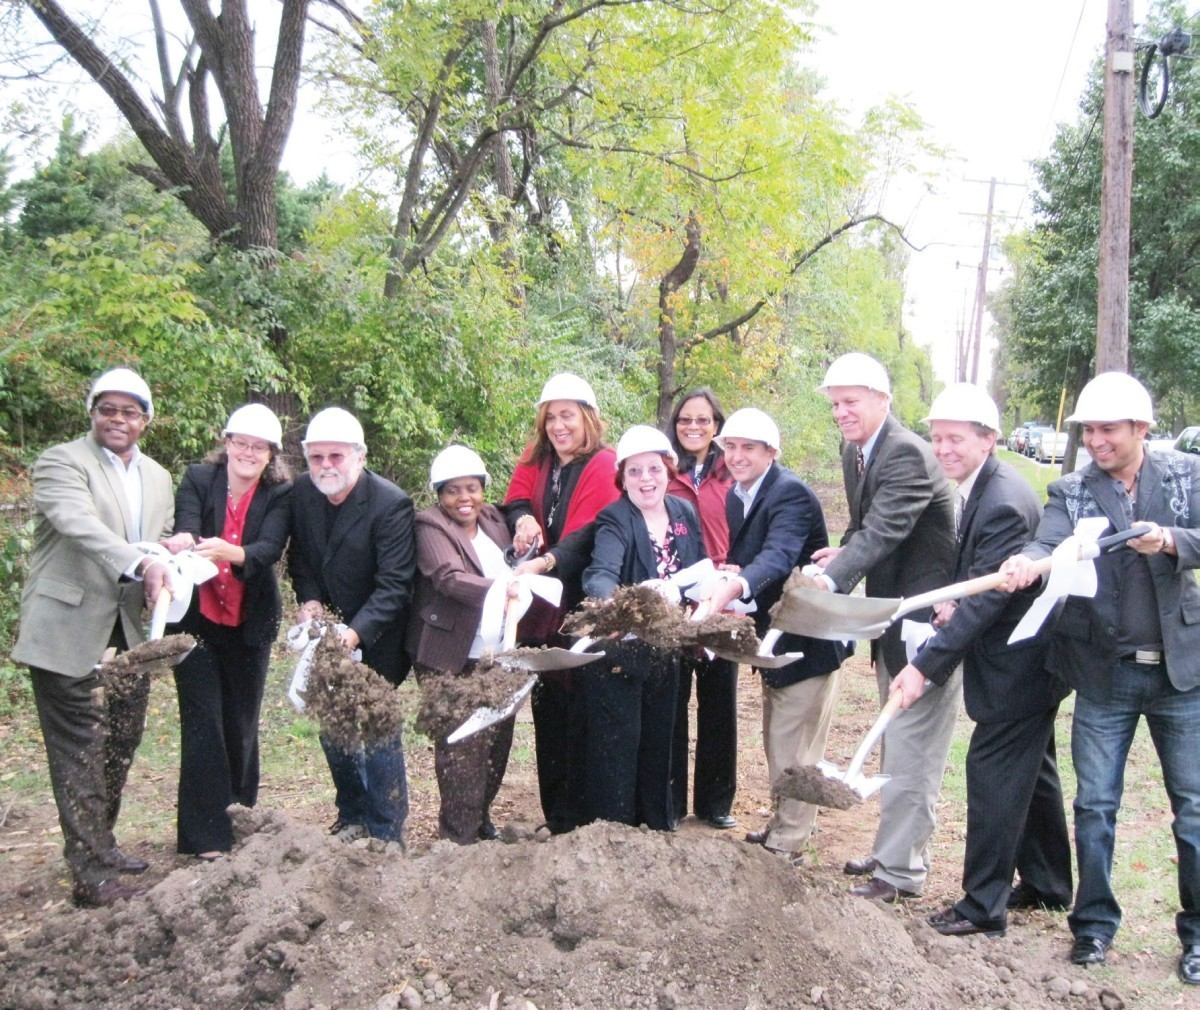 Several elected officials from the city, state and county gathered to break ground on a trail that will connect Hyattsville to Riverdale Park.